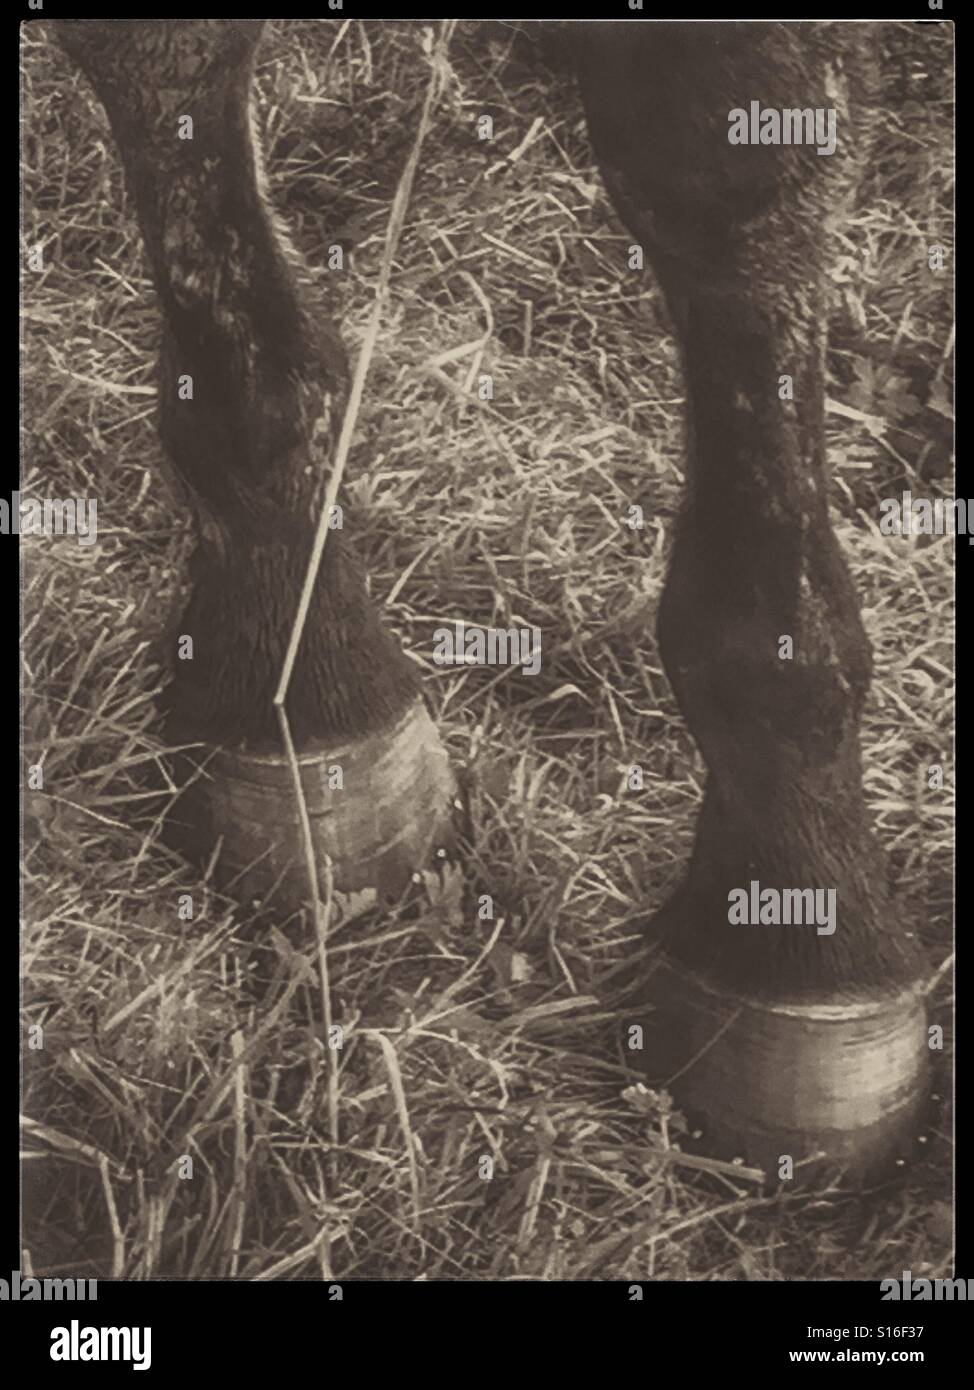 Horses legs and hooves - Stock Image